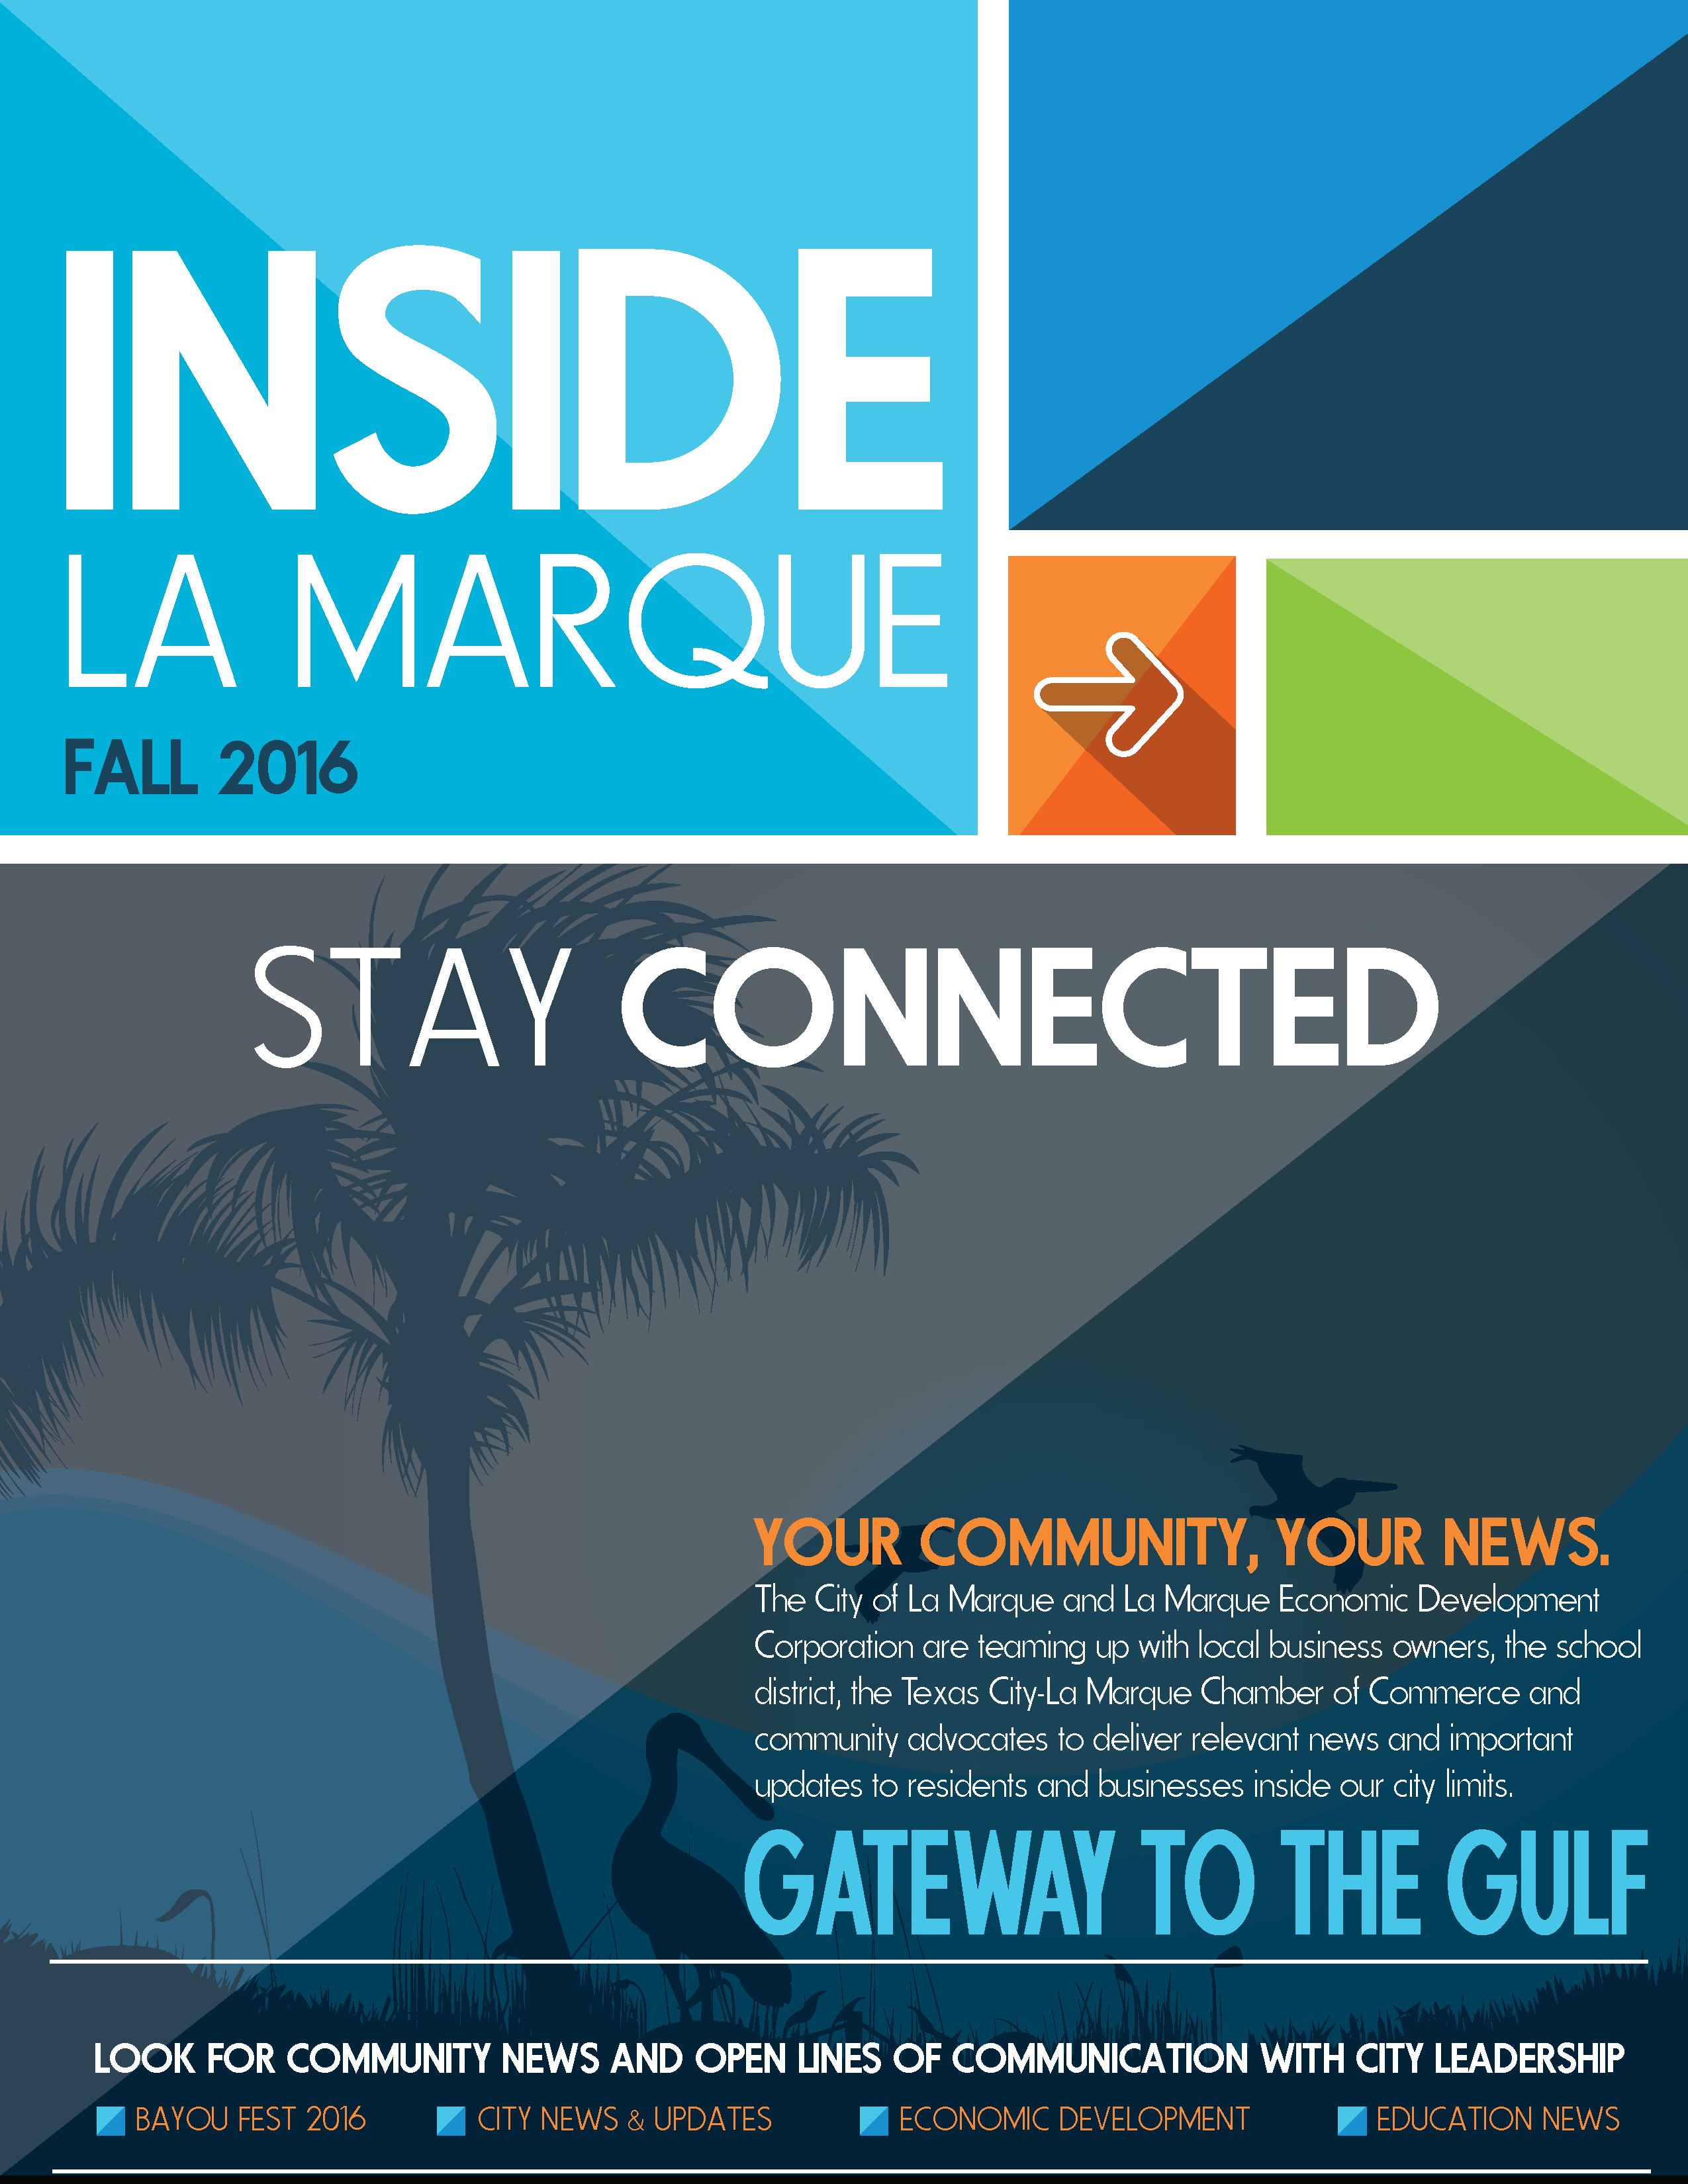 Inside La Marque_Fall 2016_COVER